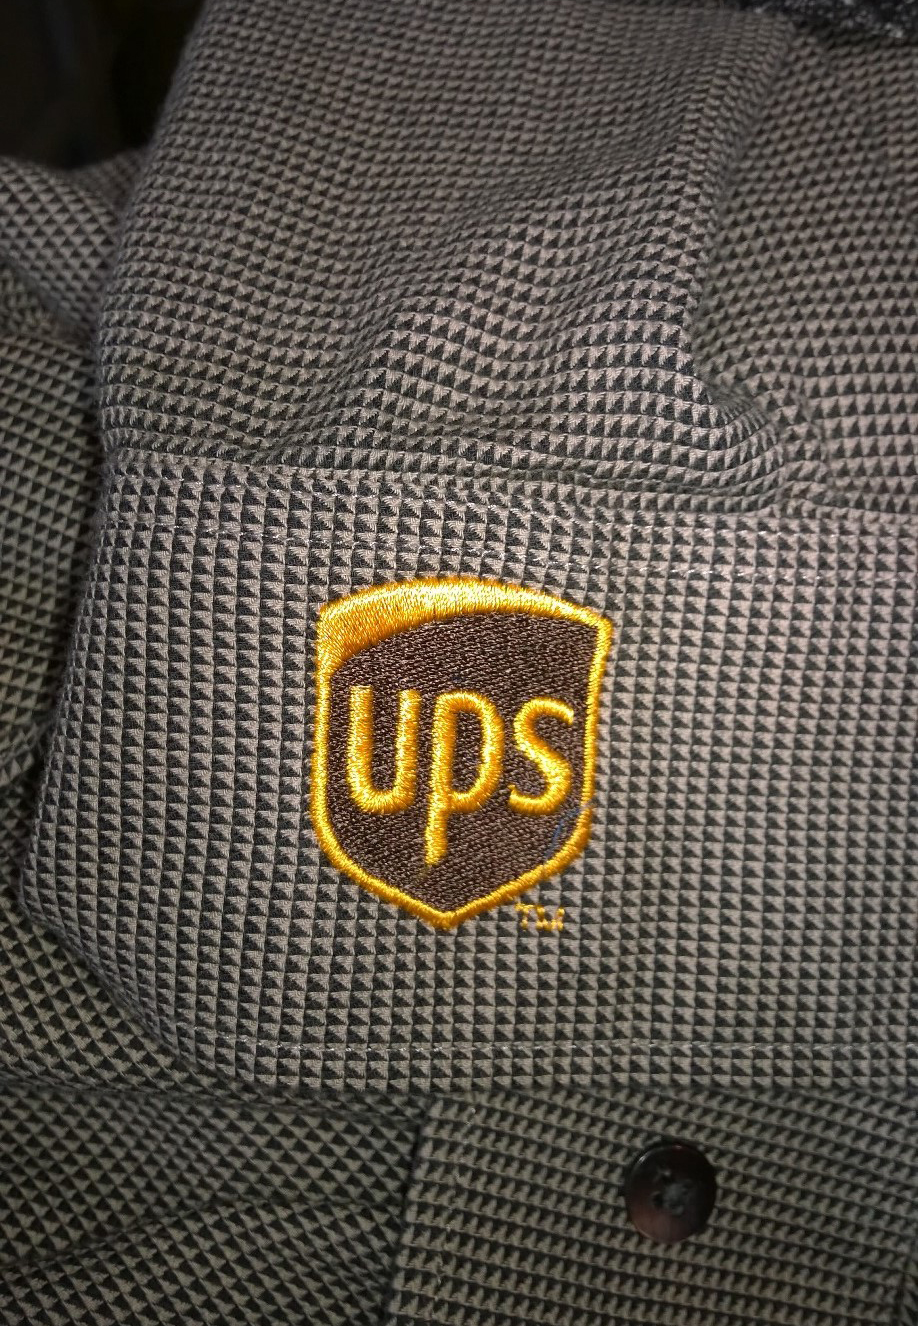 UPS logo embroidered in pocket shirt